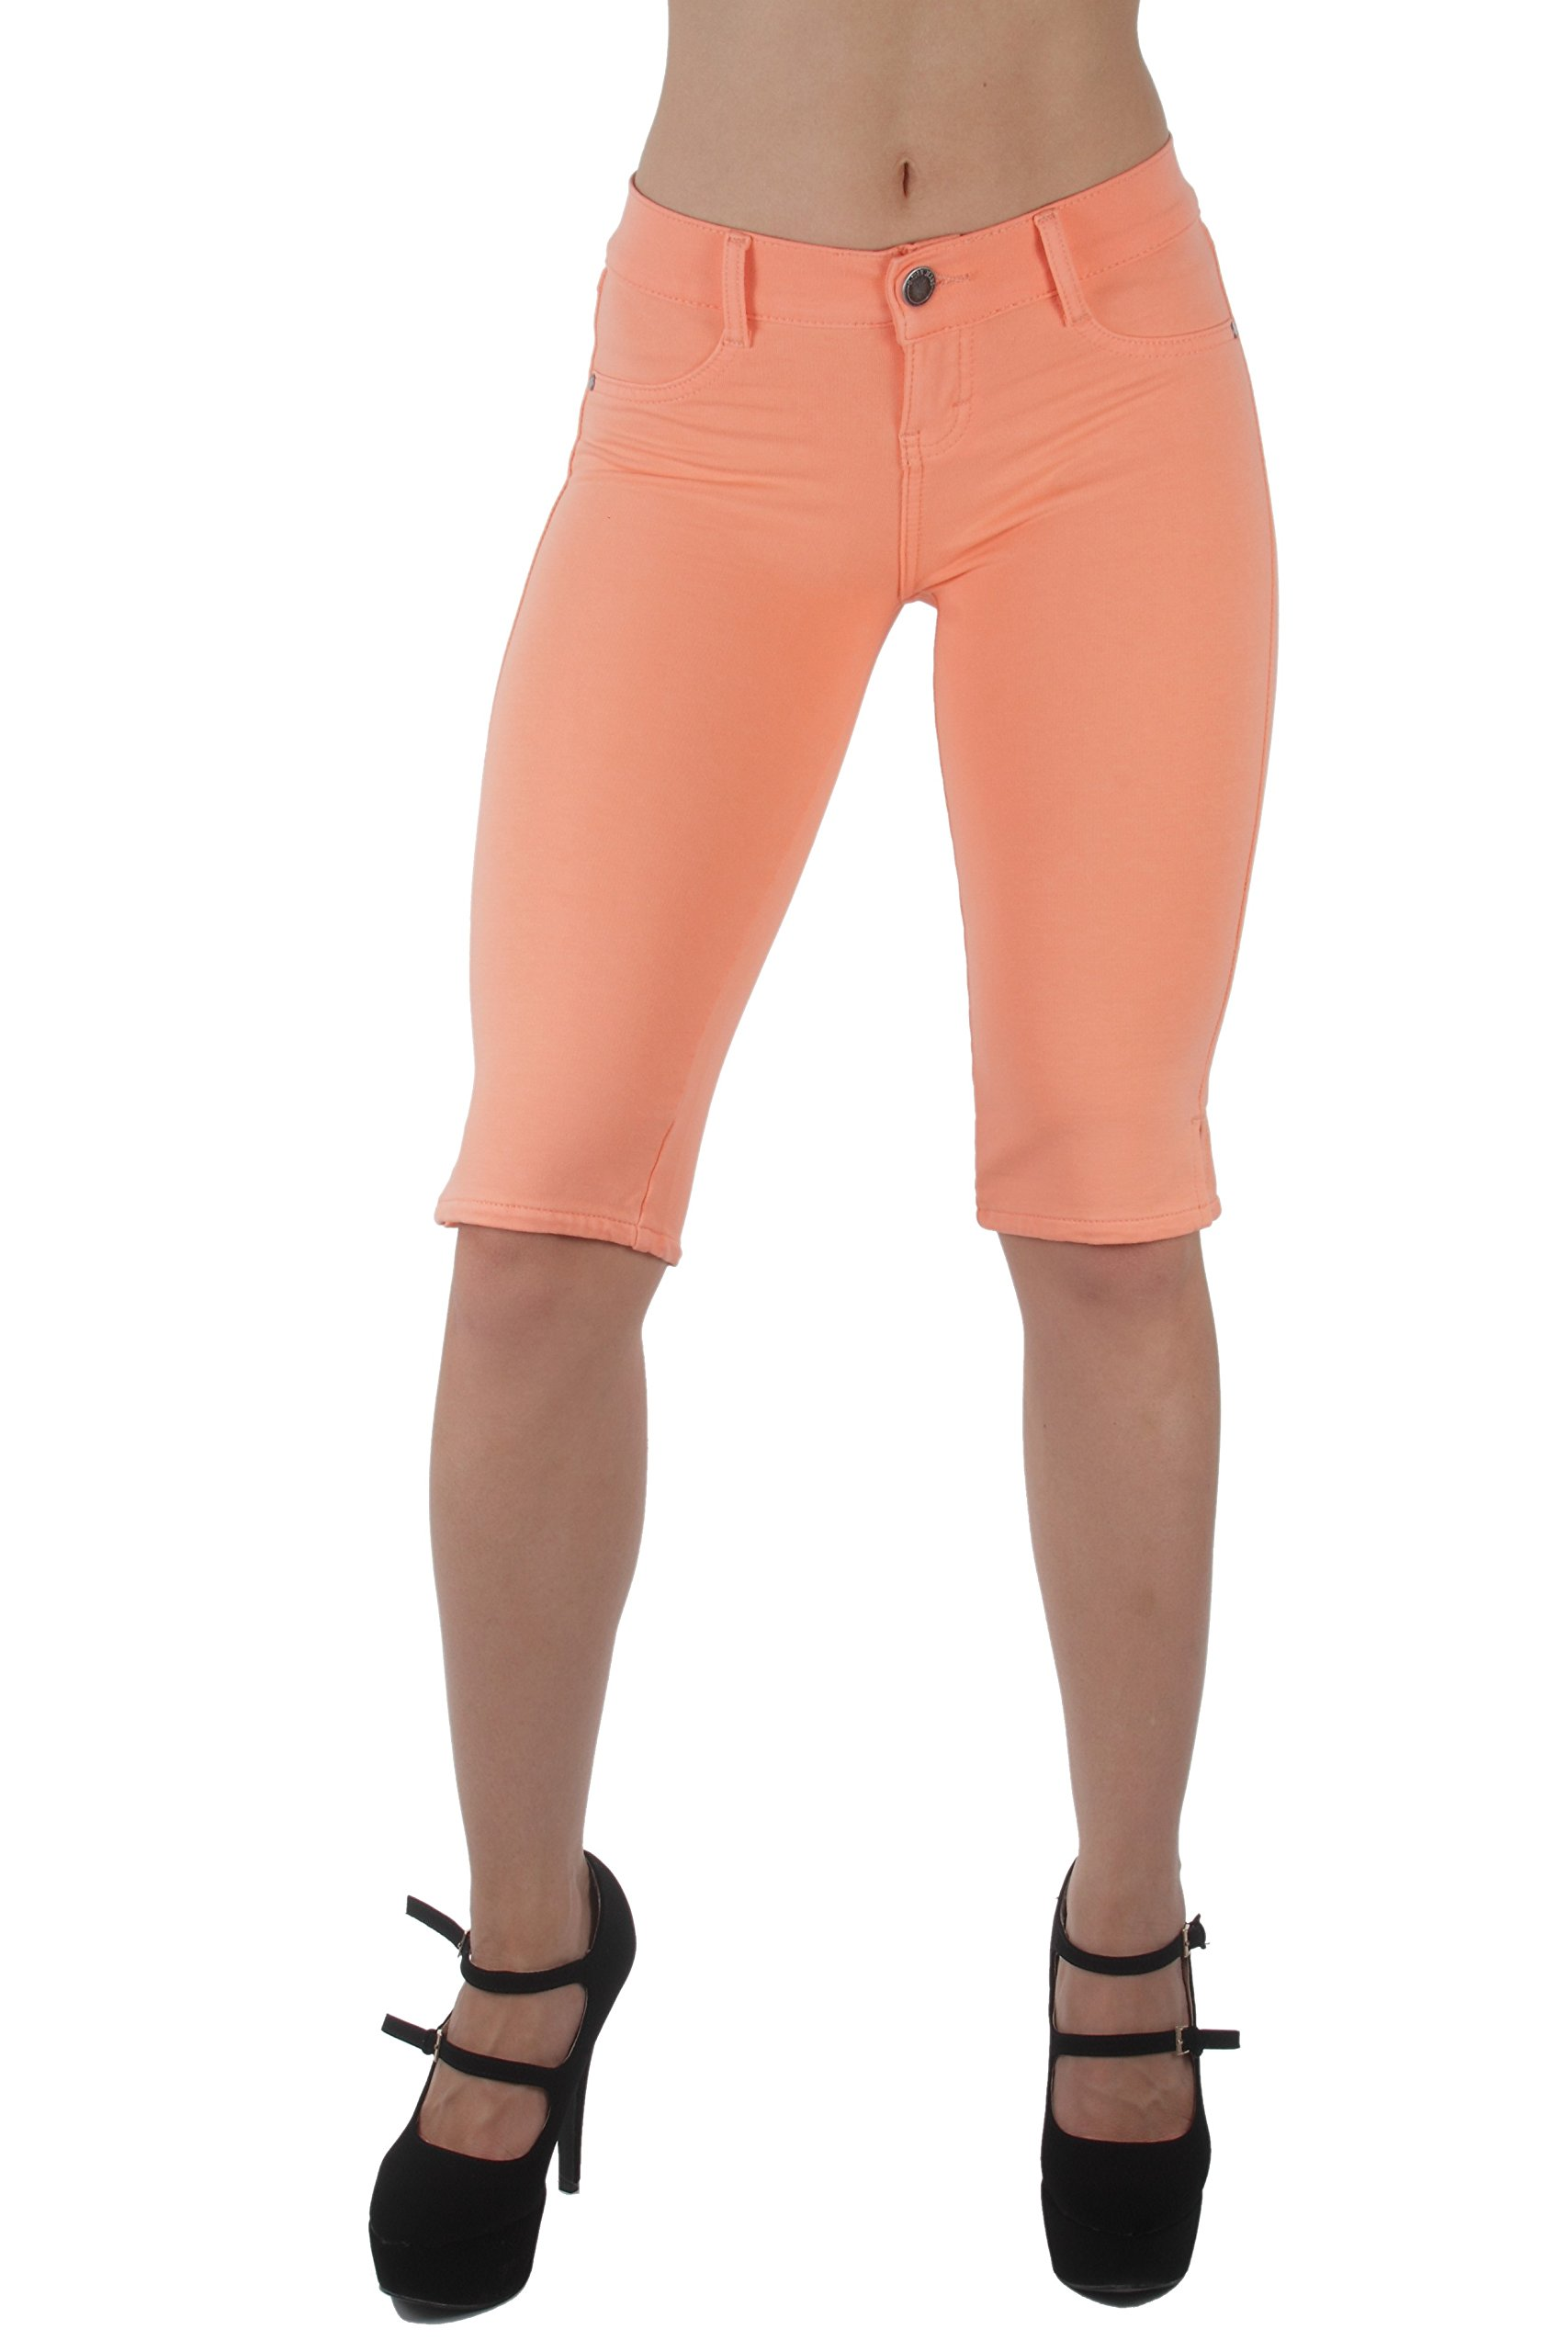 Basic Bermuda Shorts Premium Stretch French Terry Moleton With a gentle butt lifting stitching in Cantaloupe Size XL